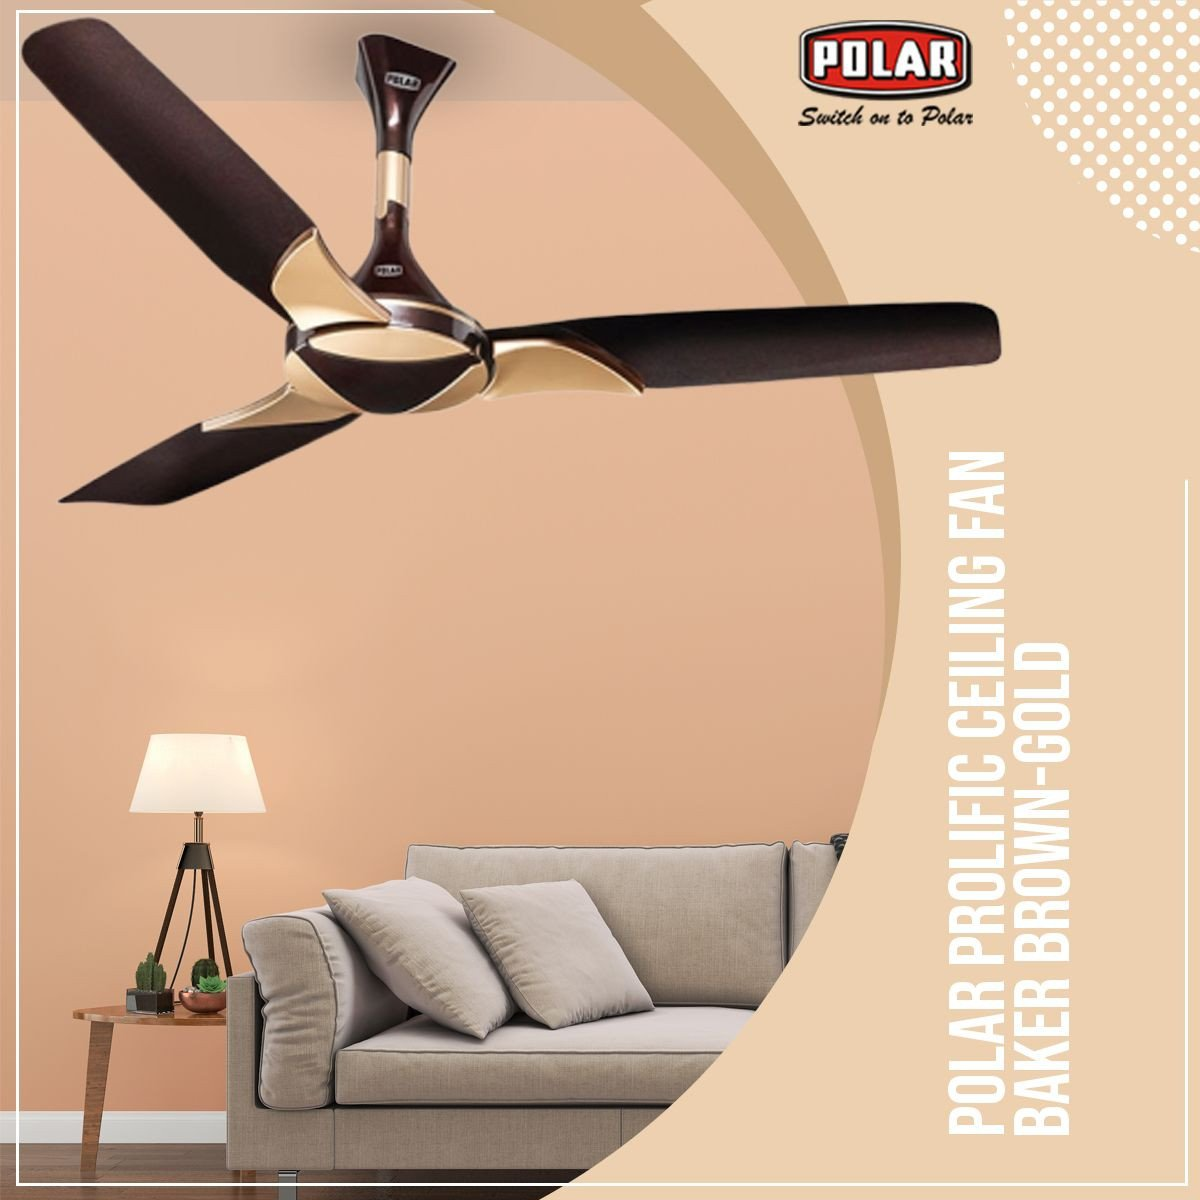 Ceiling Fan for Bedroom Luxury Polar Brings to You Ceiling Fan with the Innovative and